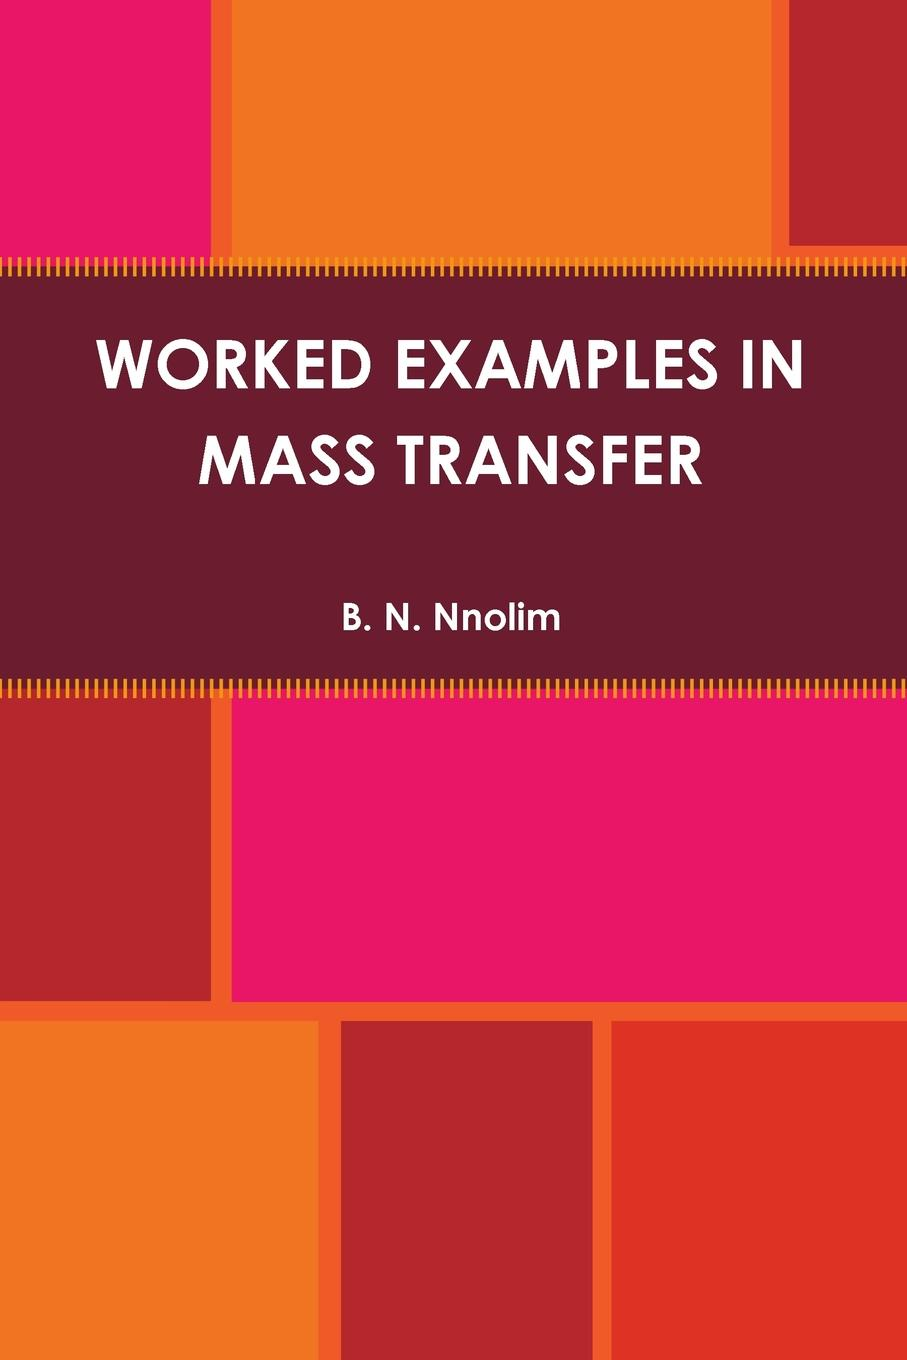 B. N. Nnolim WORKED EXAMPLES IN MASS TRANSFER study of knowledge transfer in cambodia